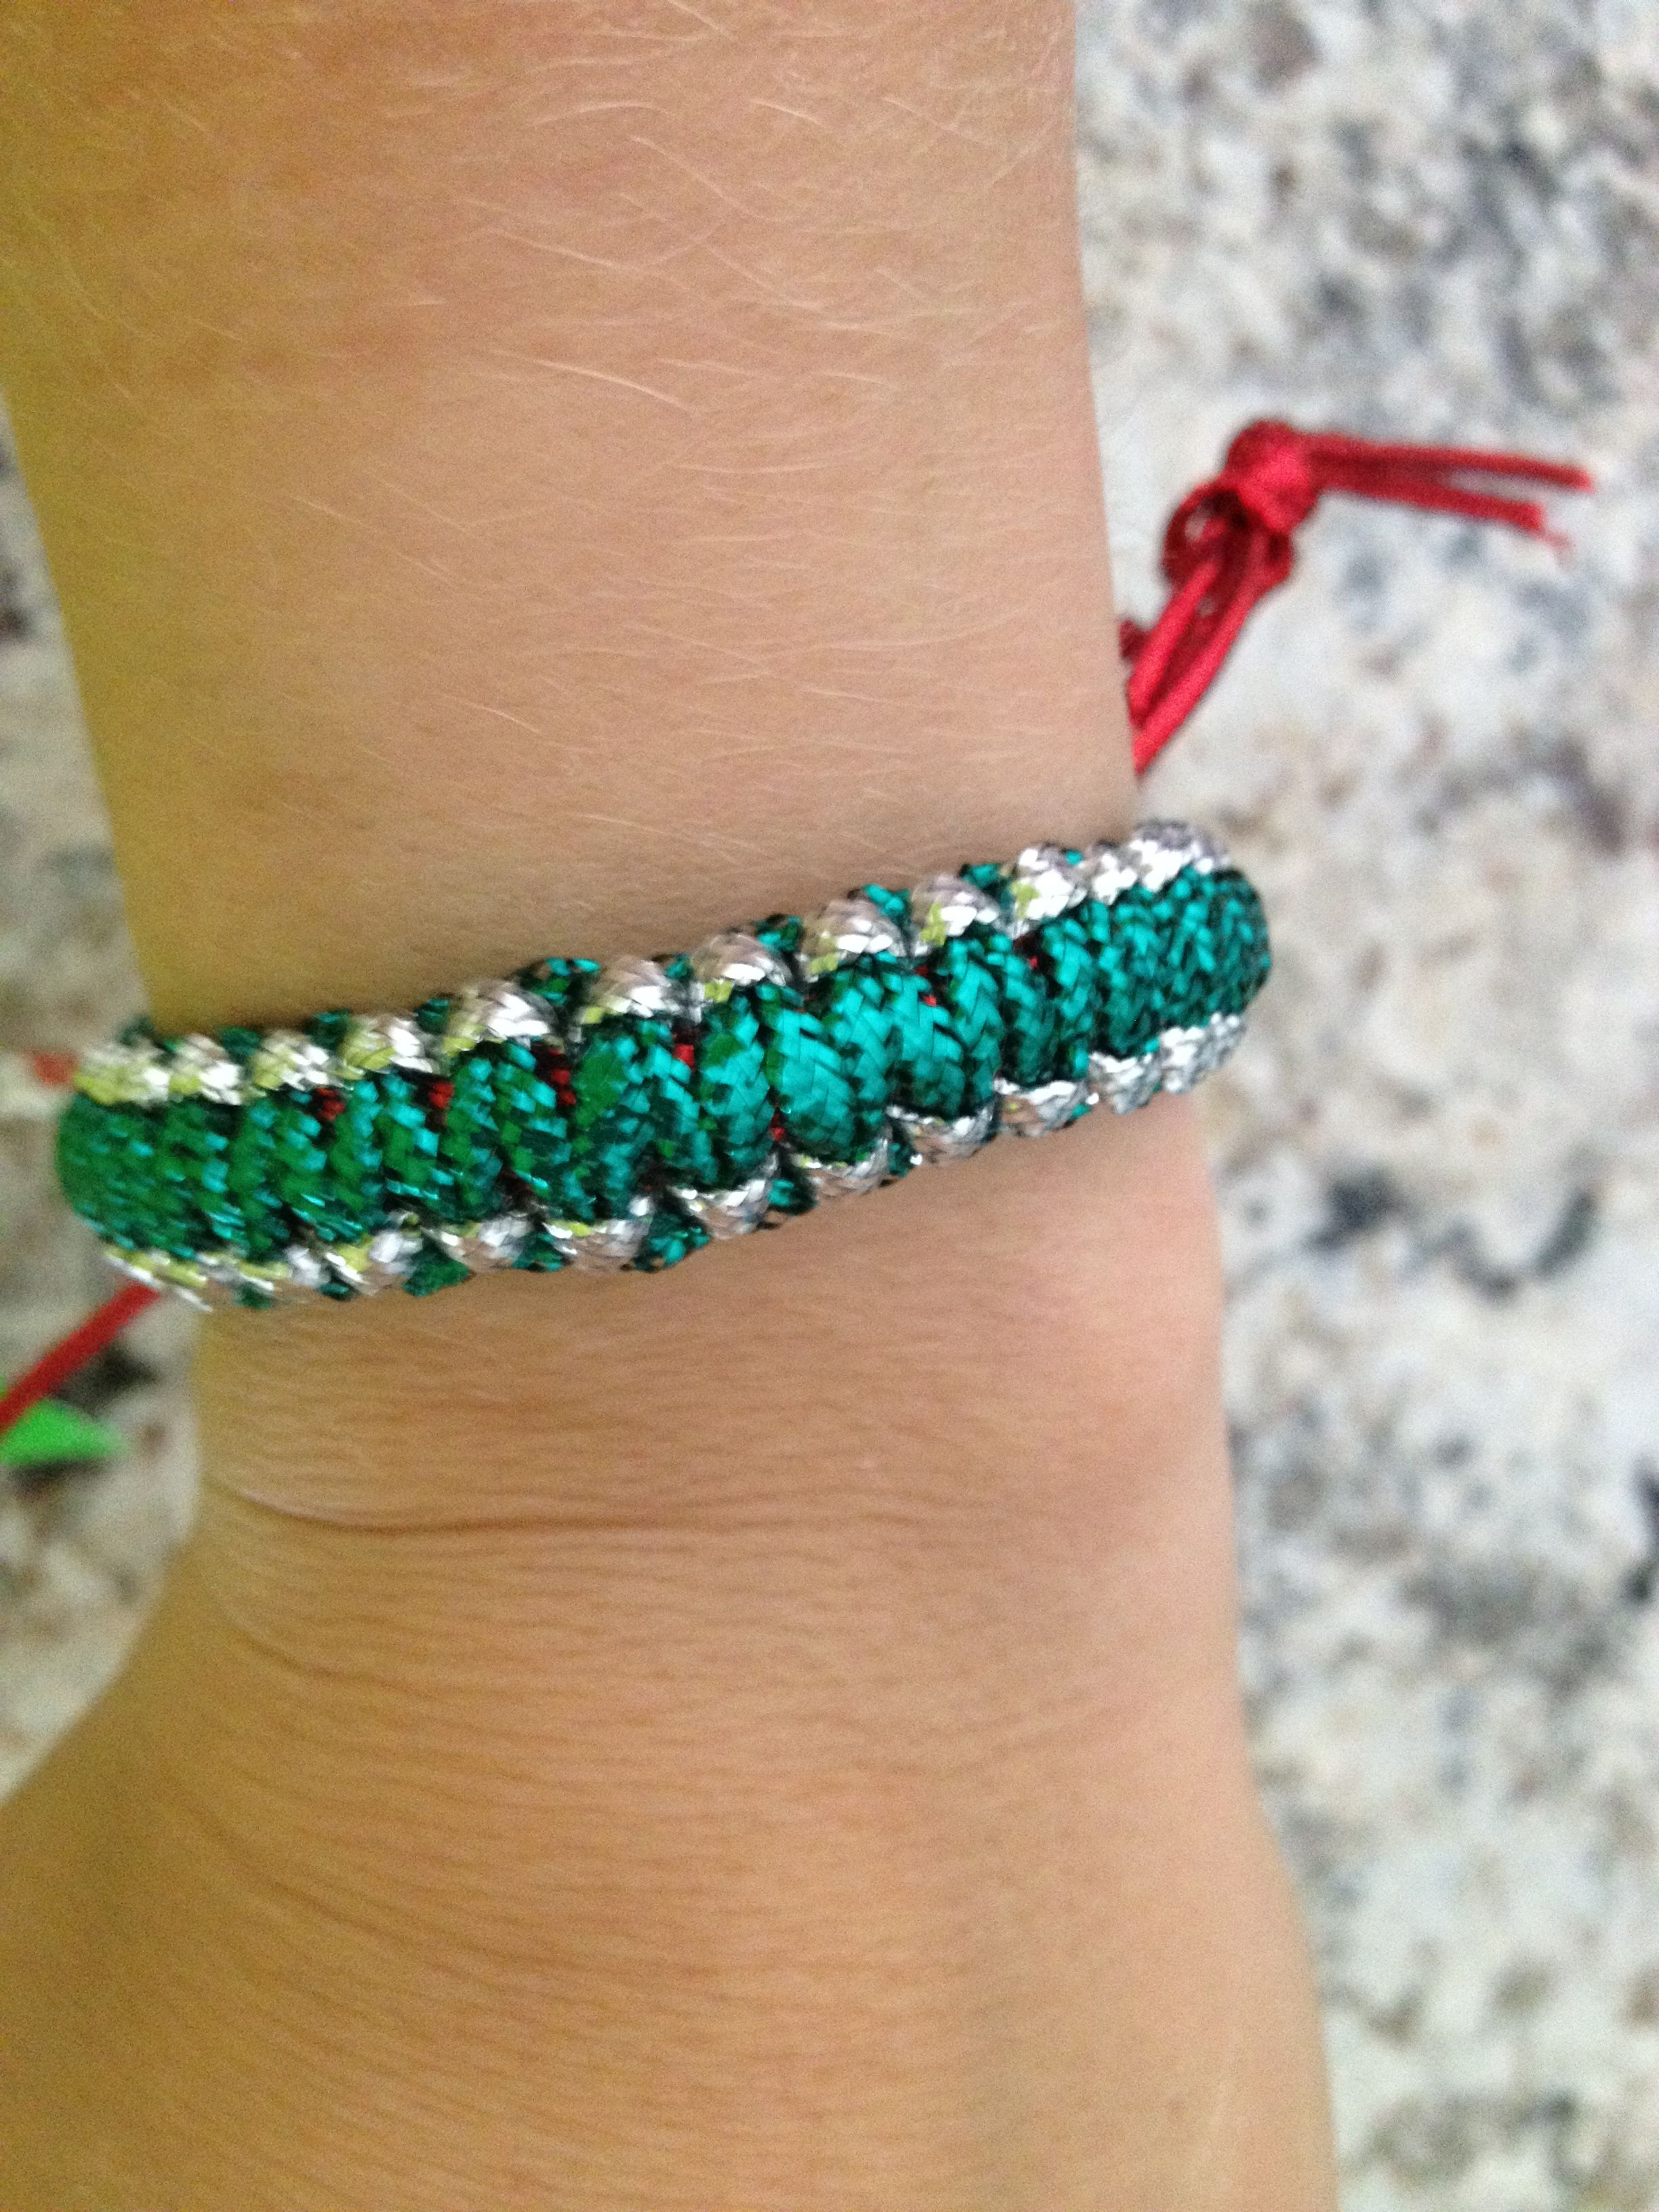 Paracord bracelet for sale on sloanesdesigns on etsy jewelry